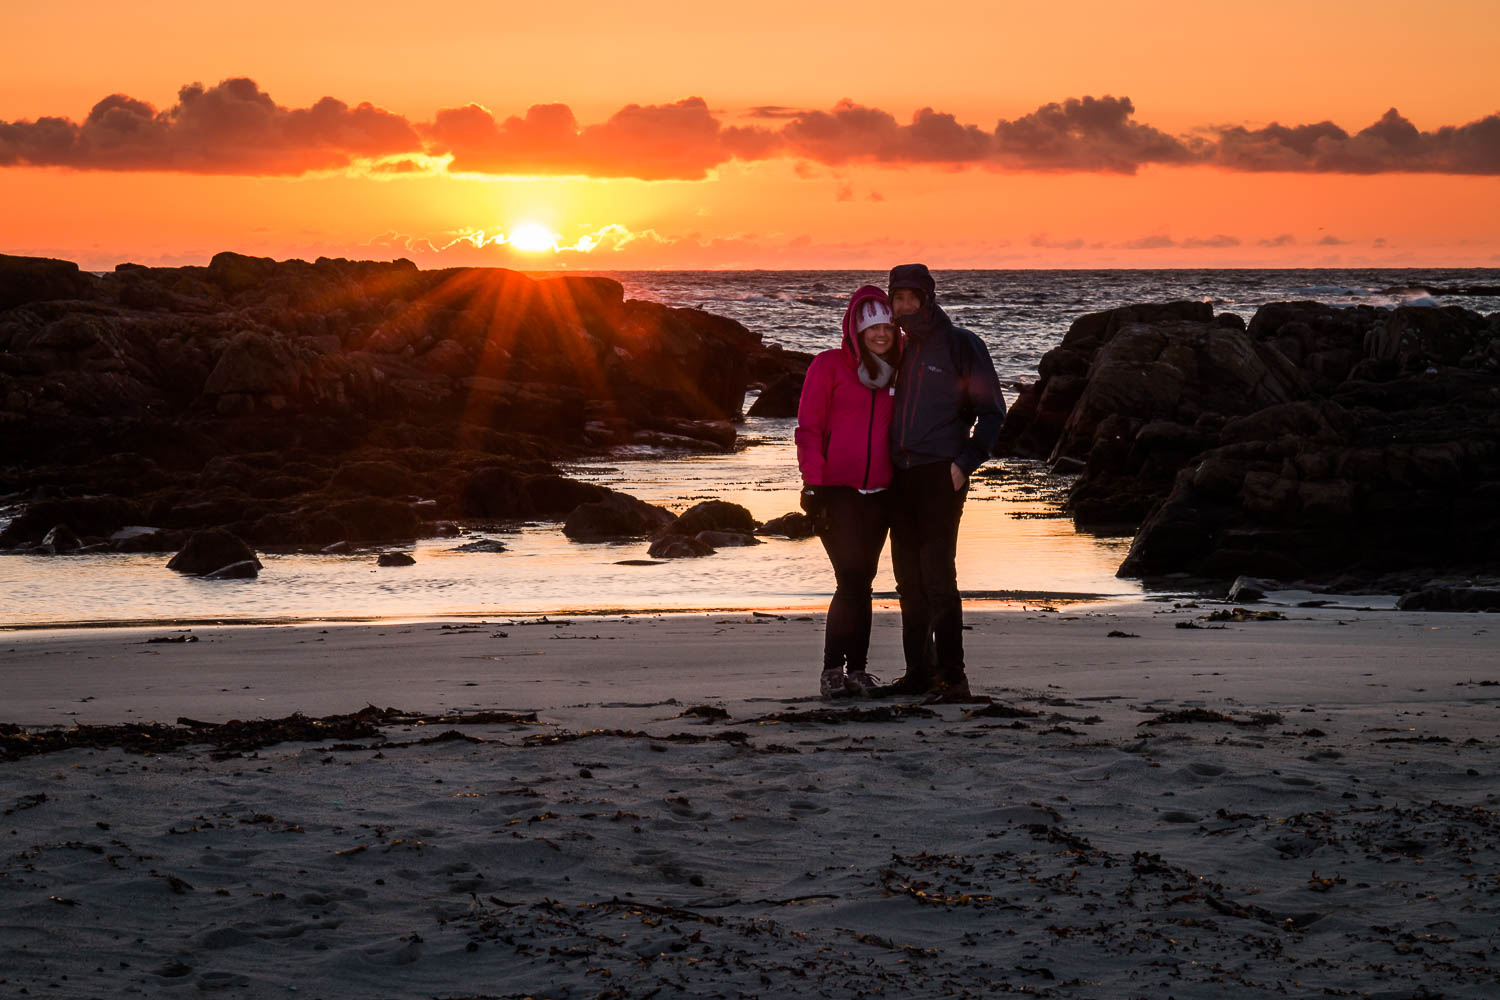 Our last sunset on Tiree for this holiday -camera on timer and a dash to stand with Anna! (And yes, it was cold and windy!!)